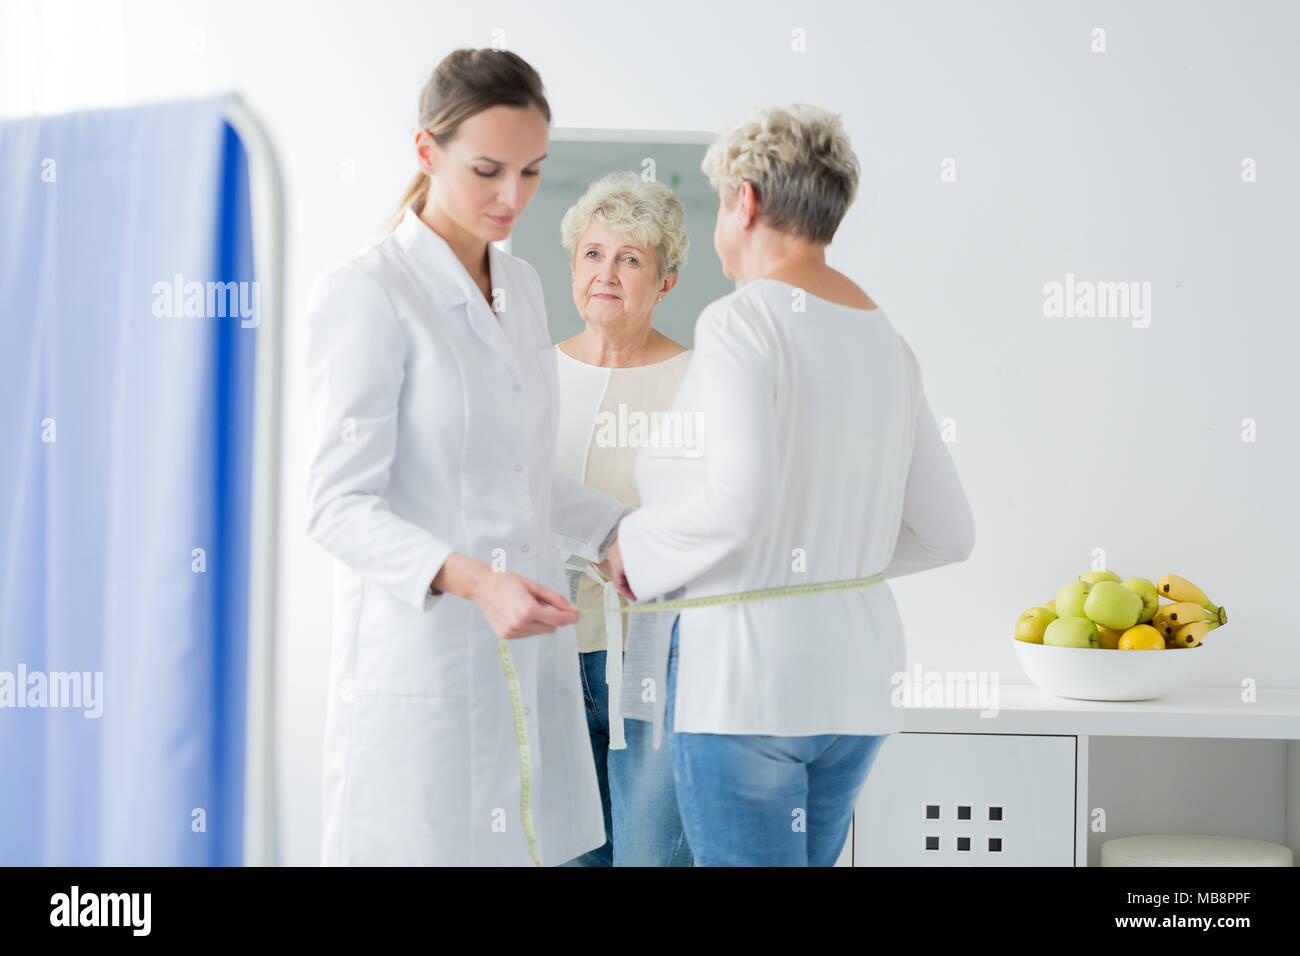 Young dietician taking waist measurements of her senior patient during appointment at a bright office - Stock Image